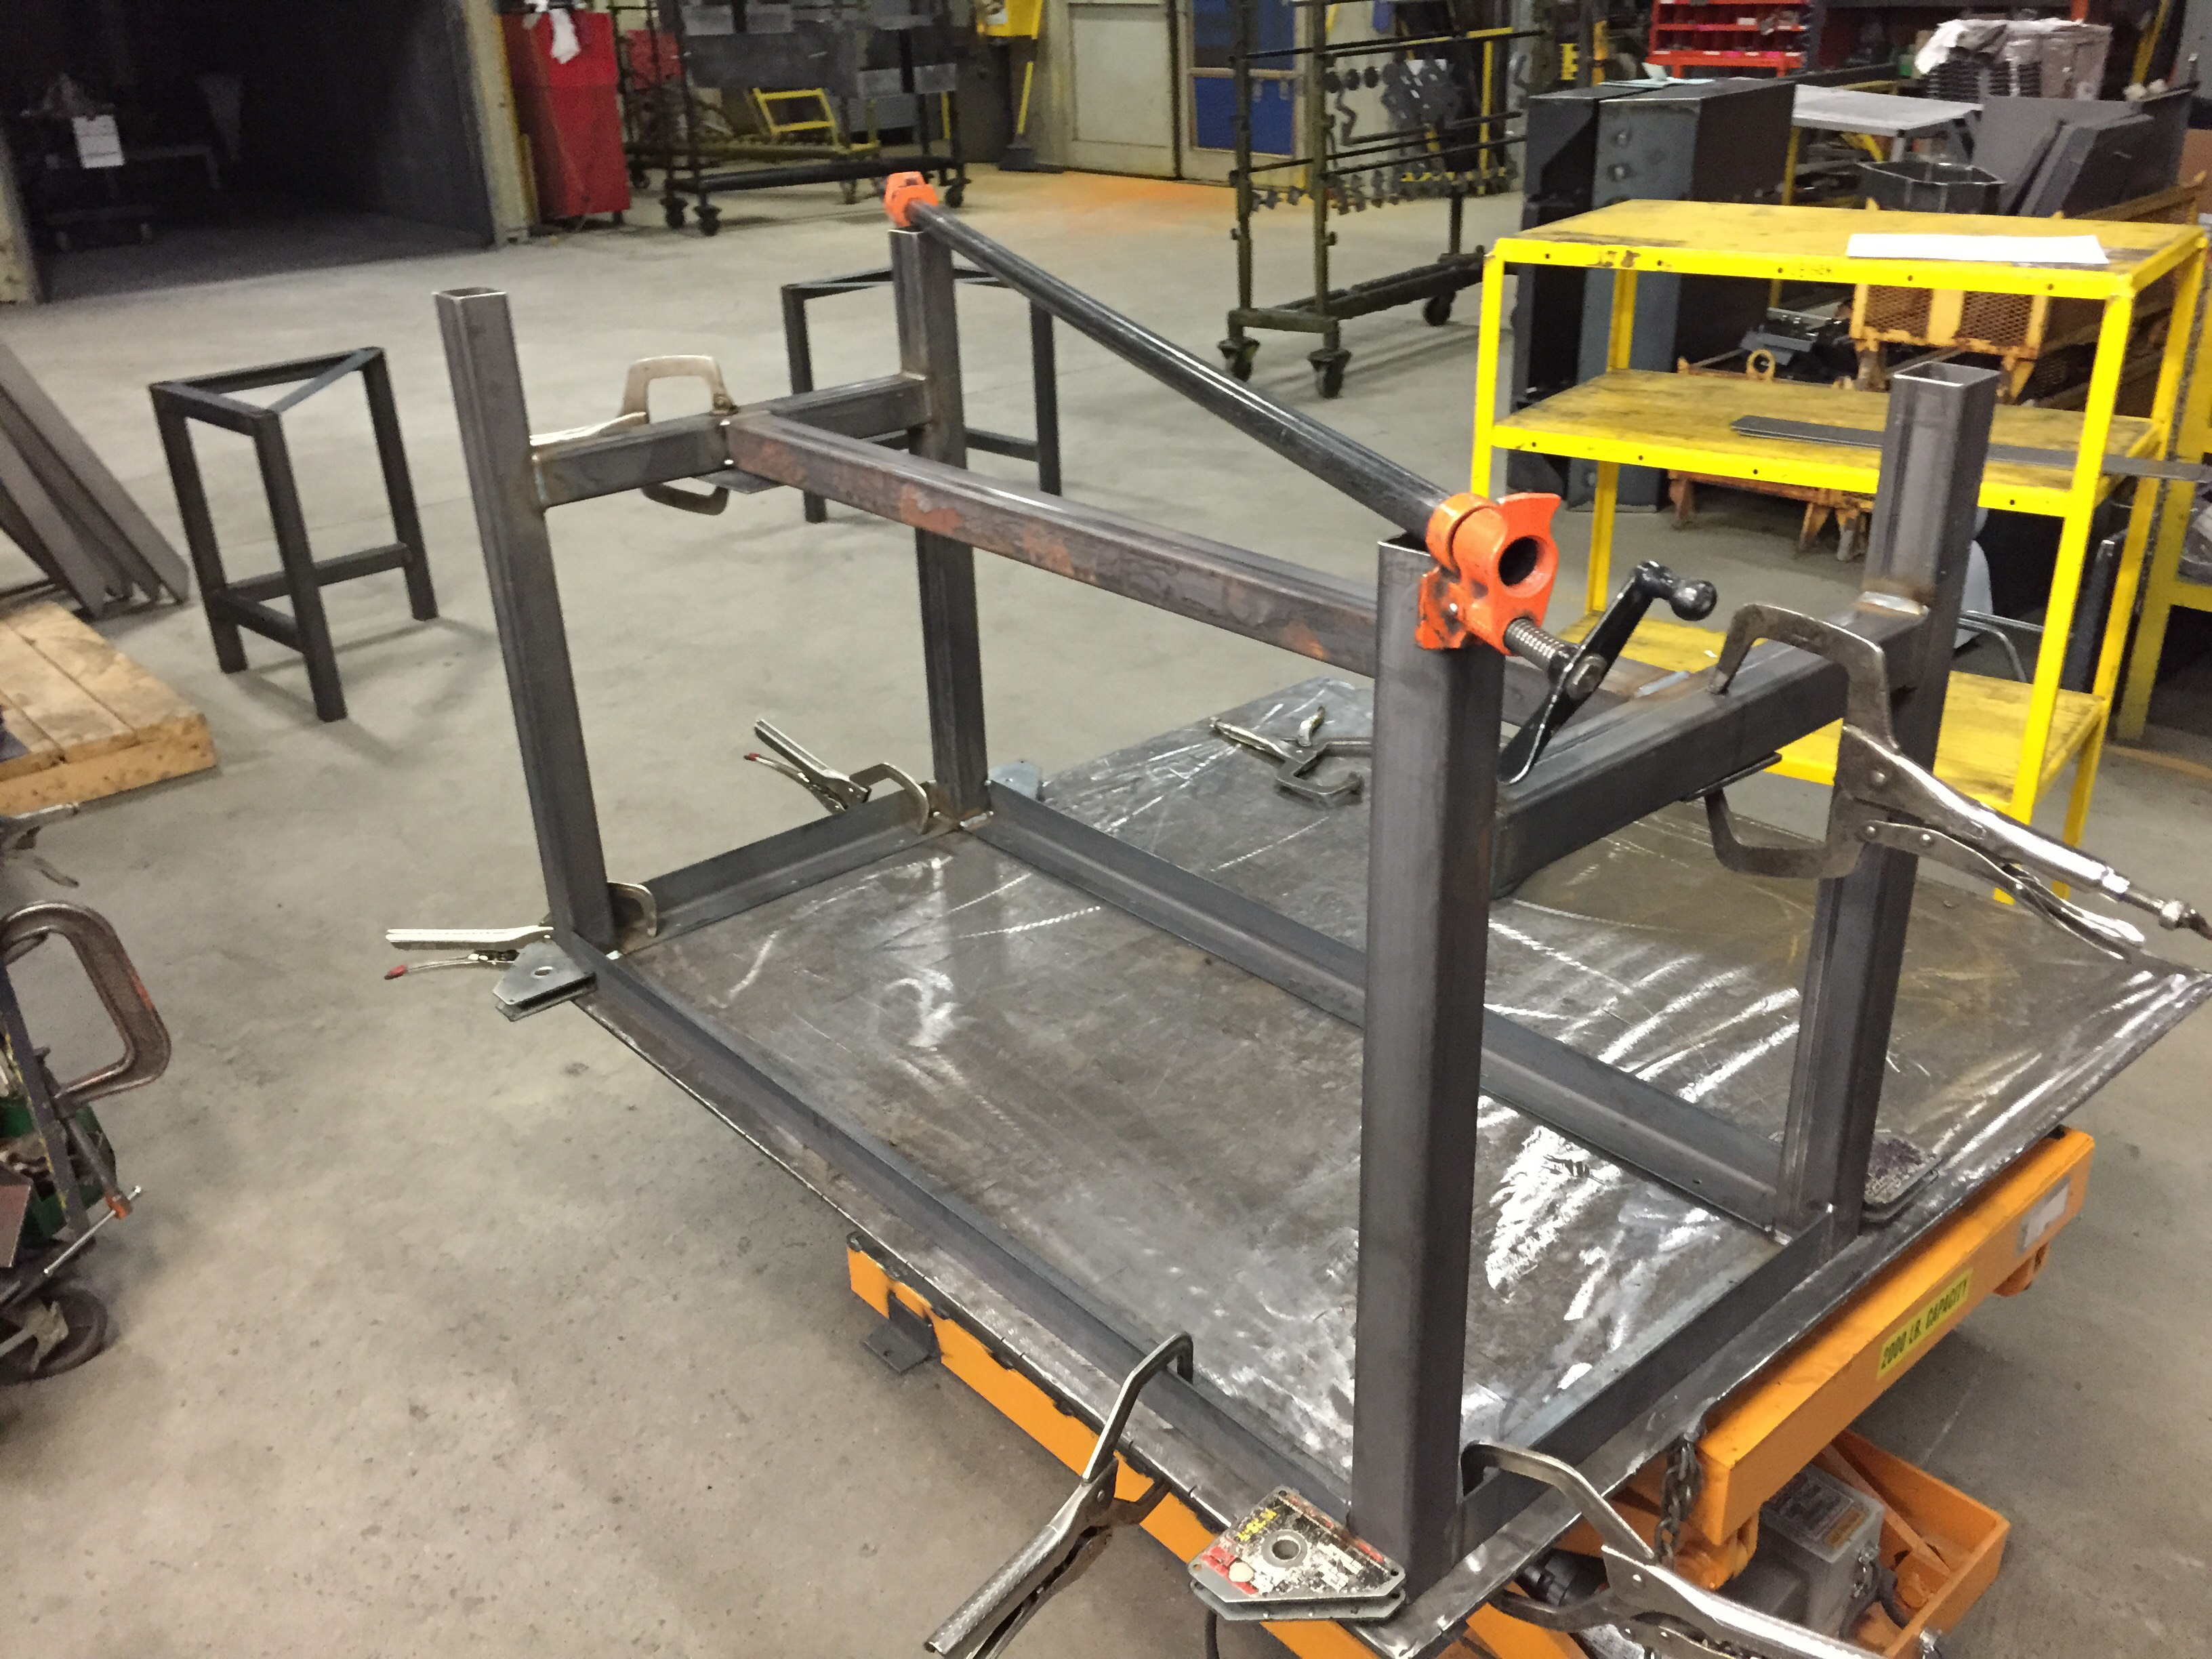 Picture of Welding Time!